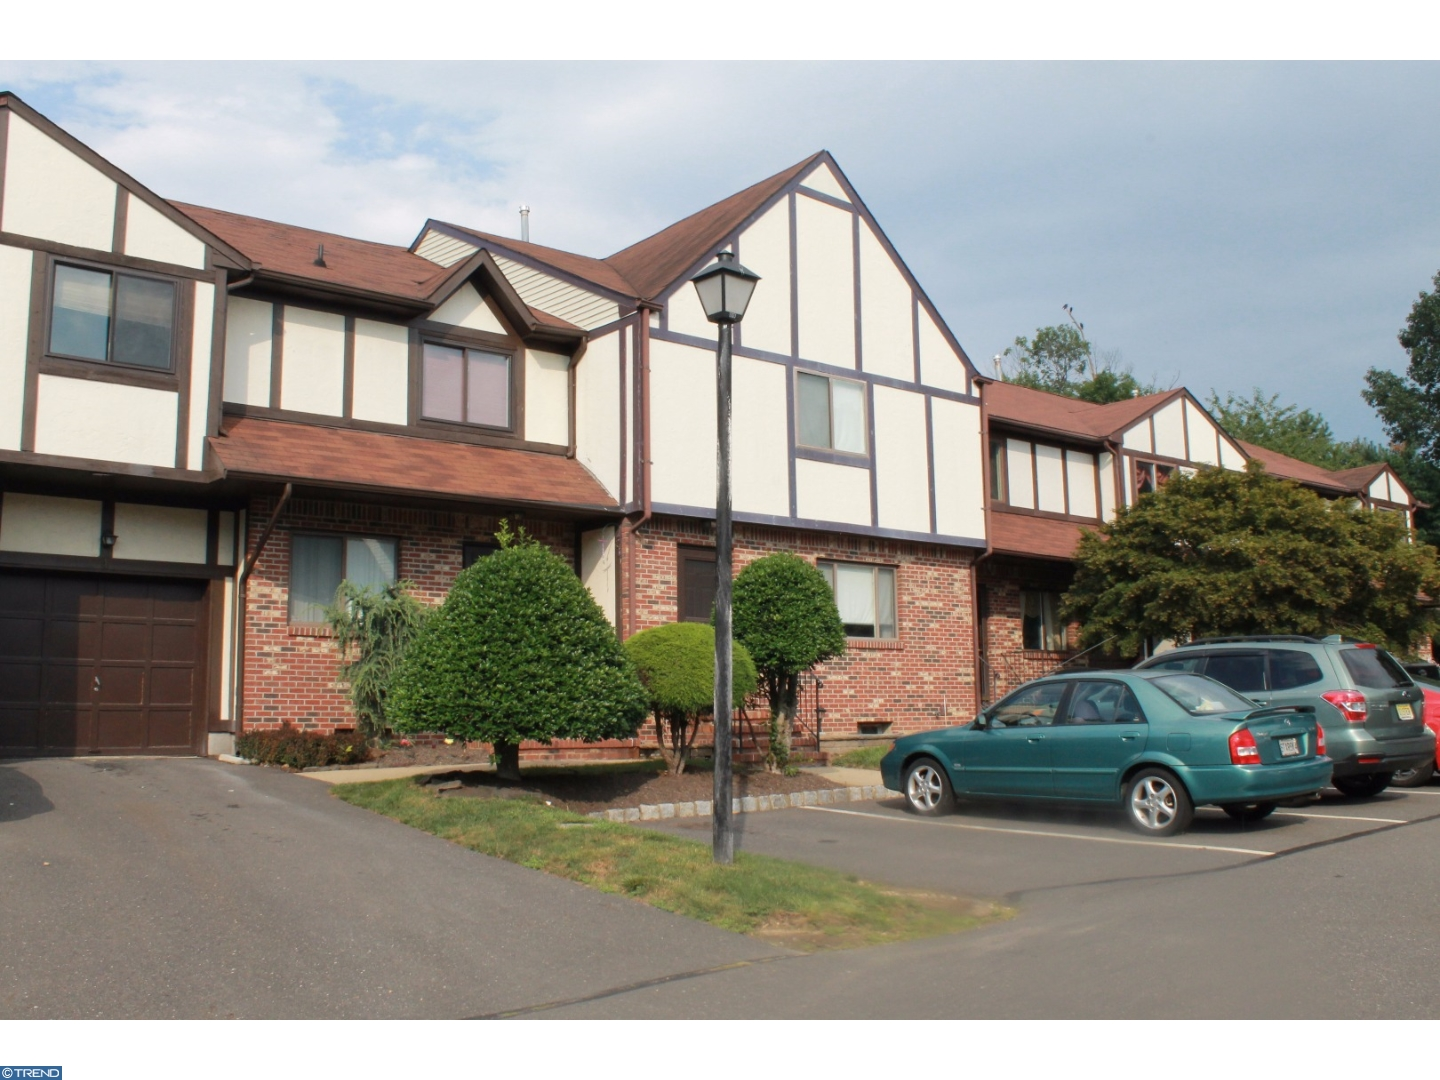 4 DEVONSHIRE CT, EWING TWP, NJ 08628